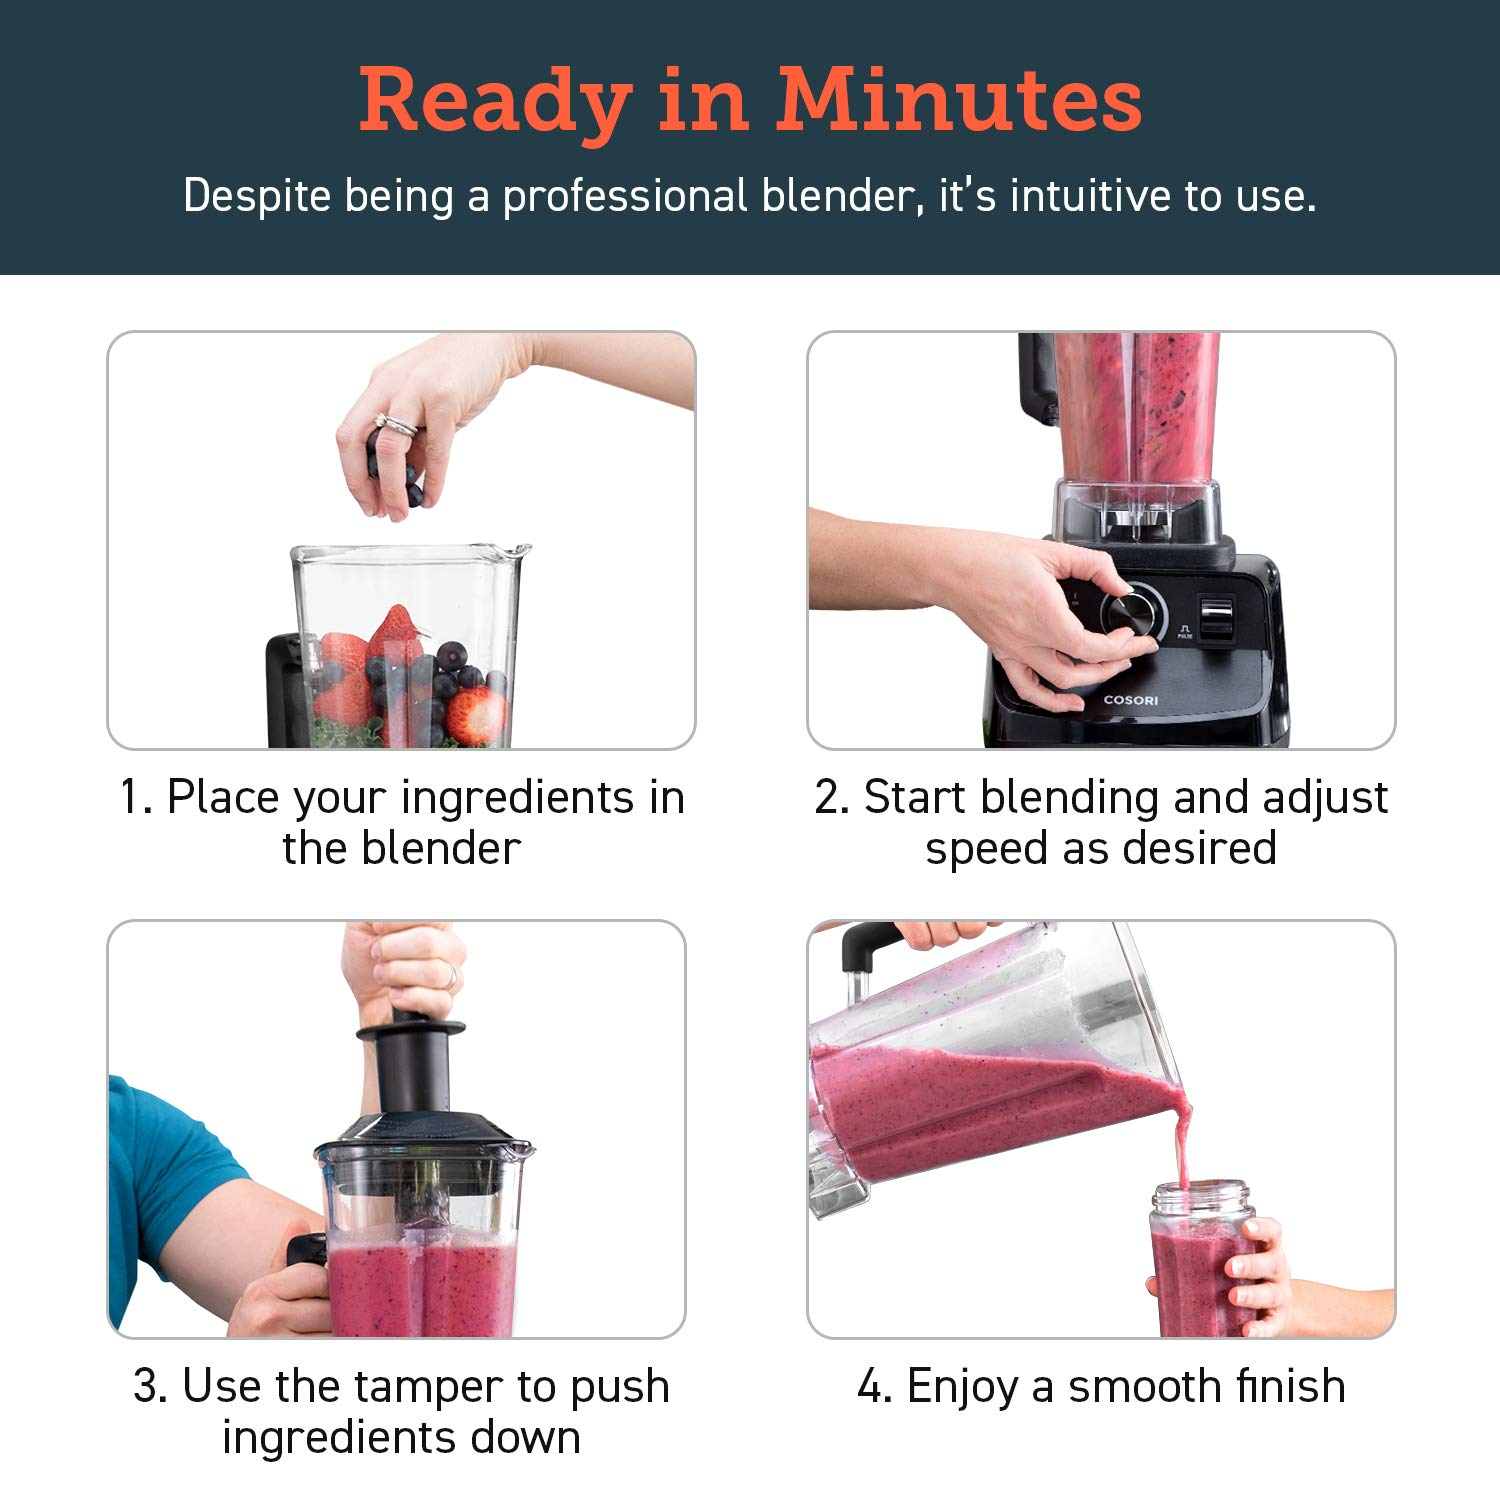 COSORI Blender for Shakes and Smoothies(50 Recipes),1400W Heavy Duty Professional Blender for Crushing Ice, Frozen Fruit with 64oz Pitcher&20oz Travel Bottle,2-Year Warranty,ETL Listed/FDA Compliant by COSORI (Image #4)